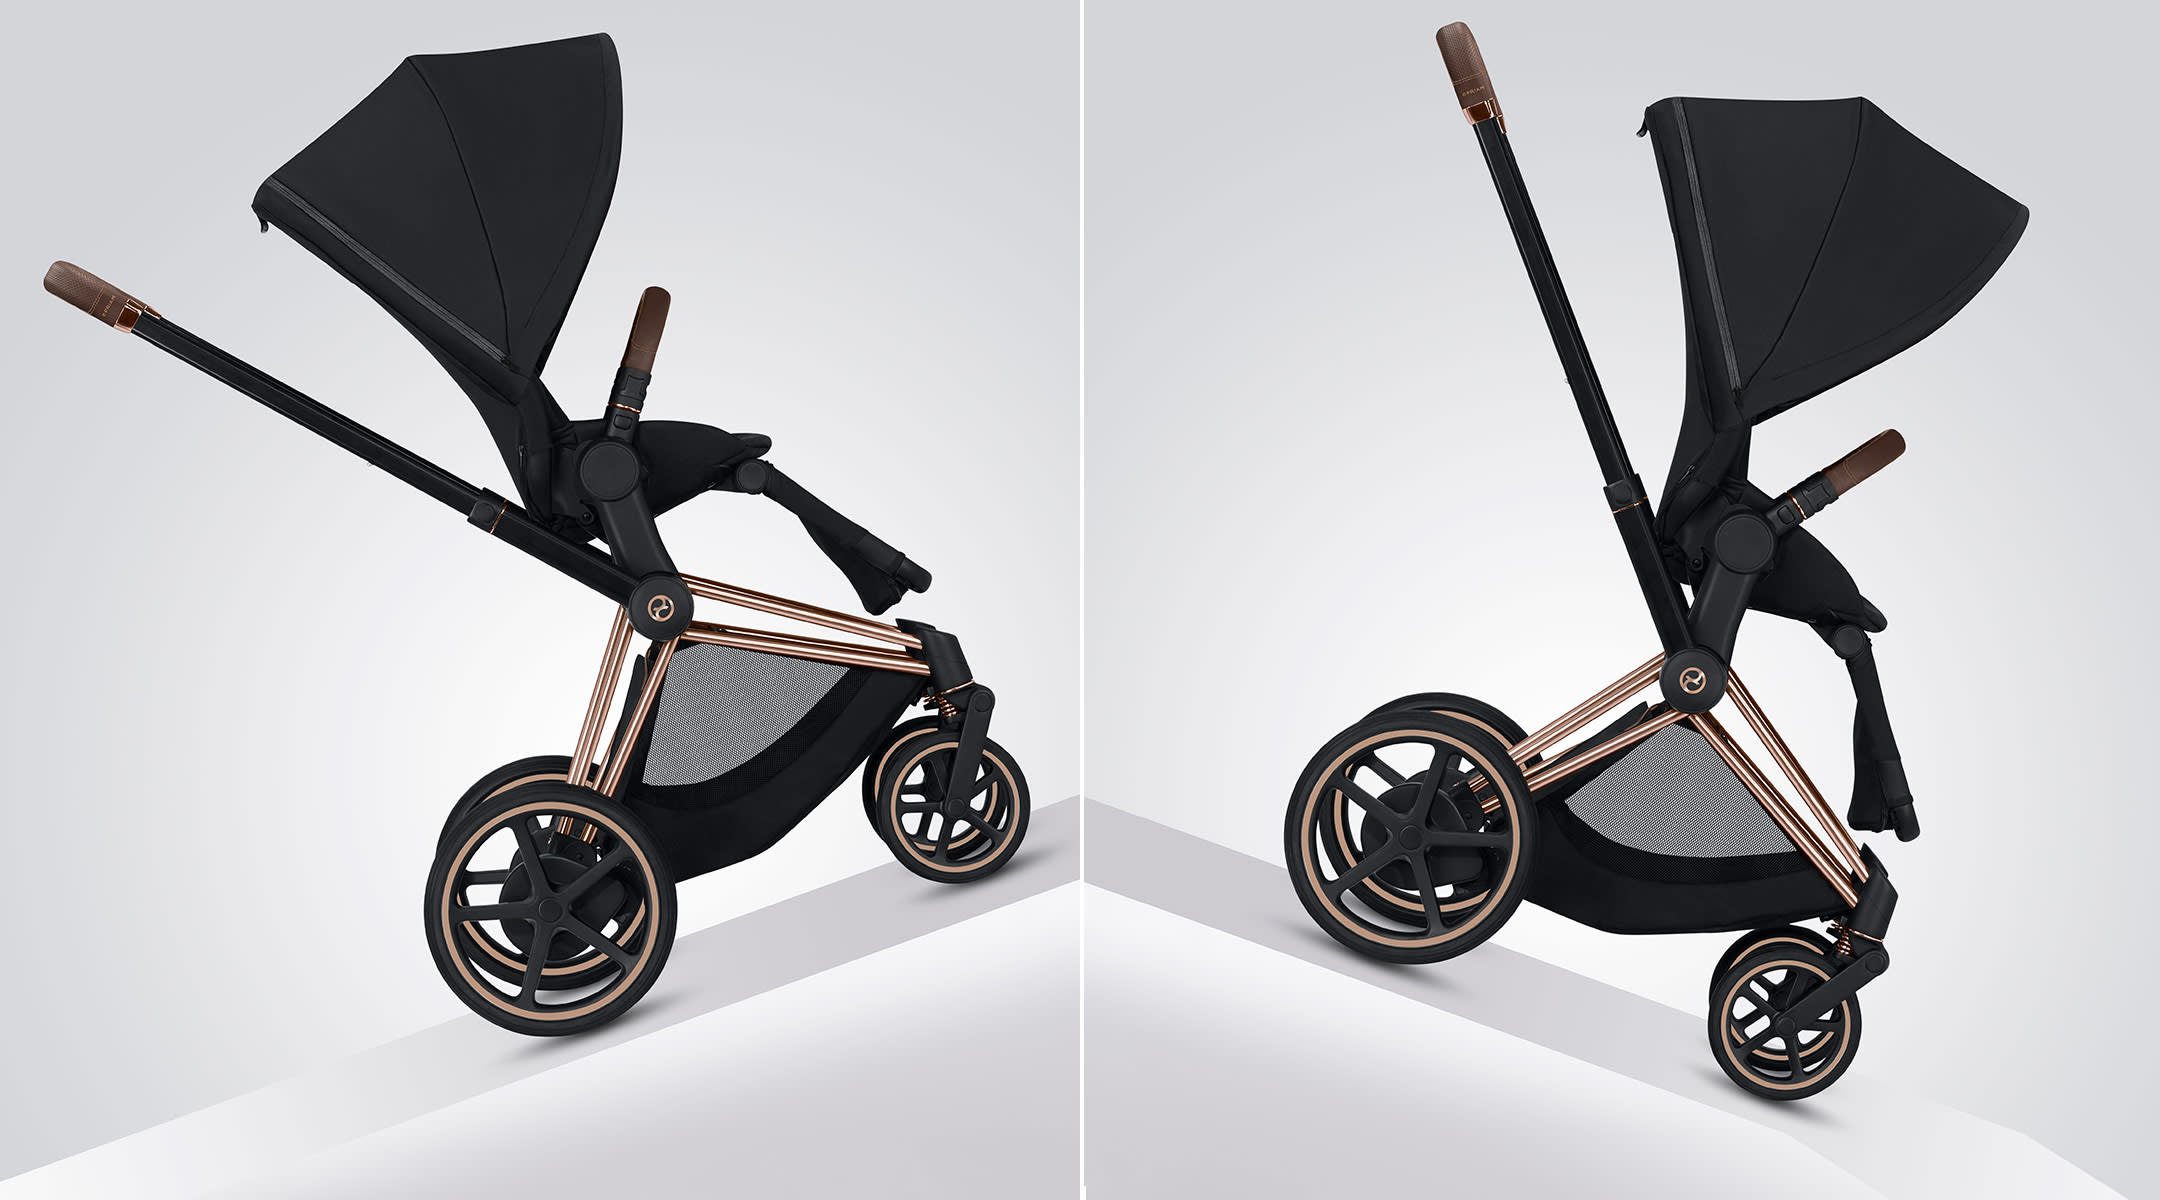 cybex releases electronic stroller